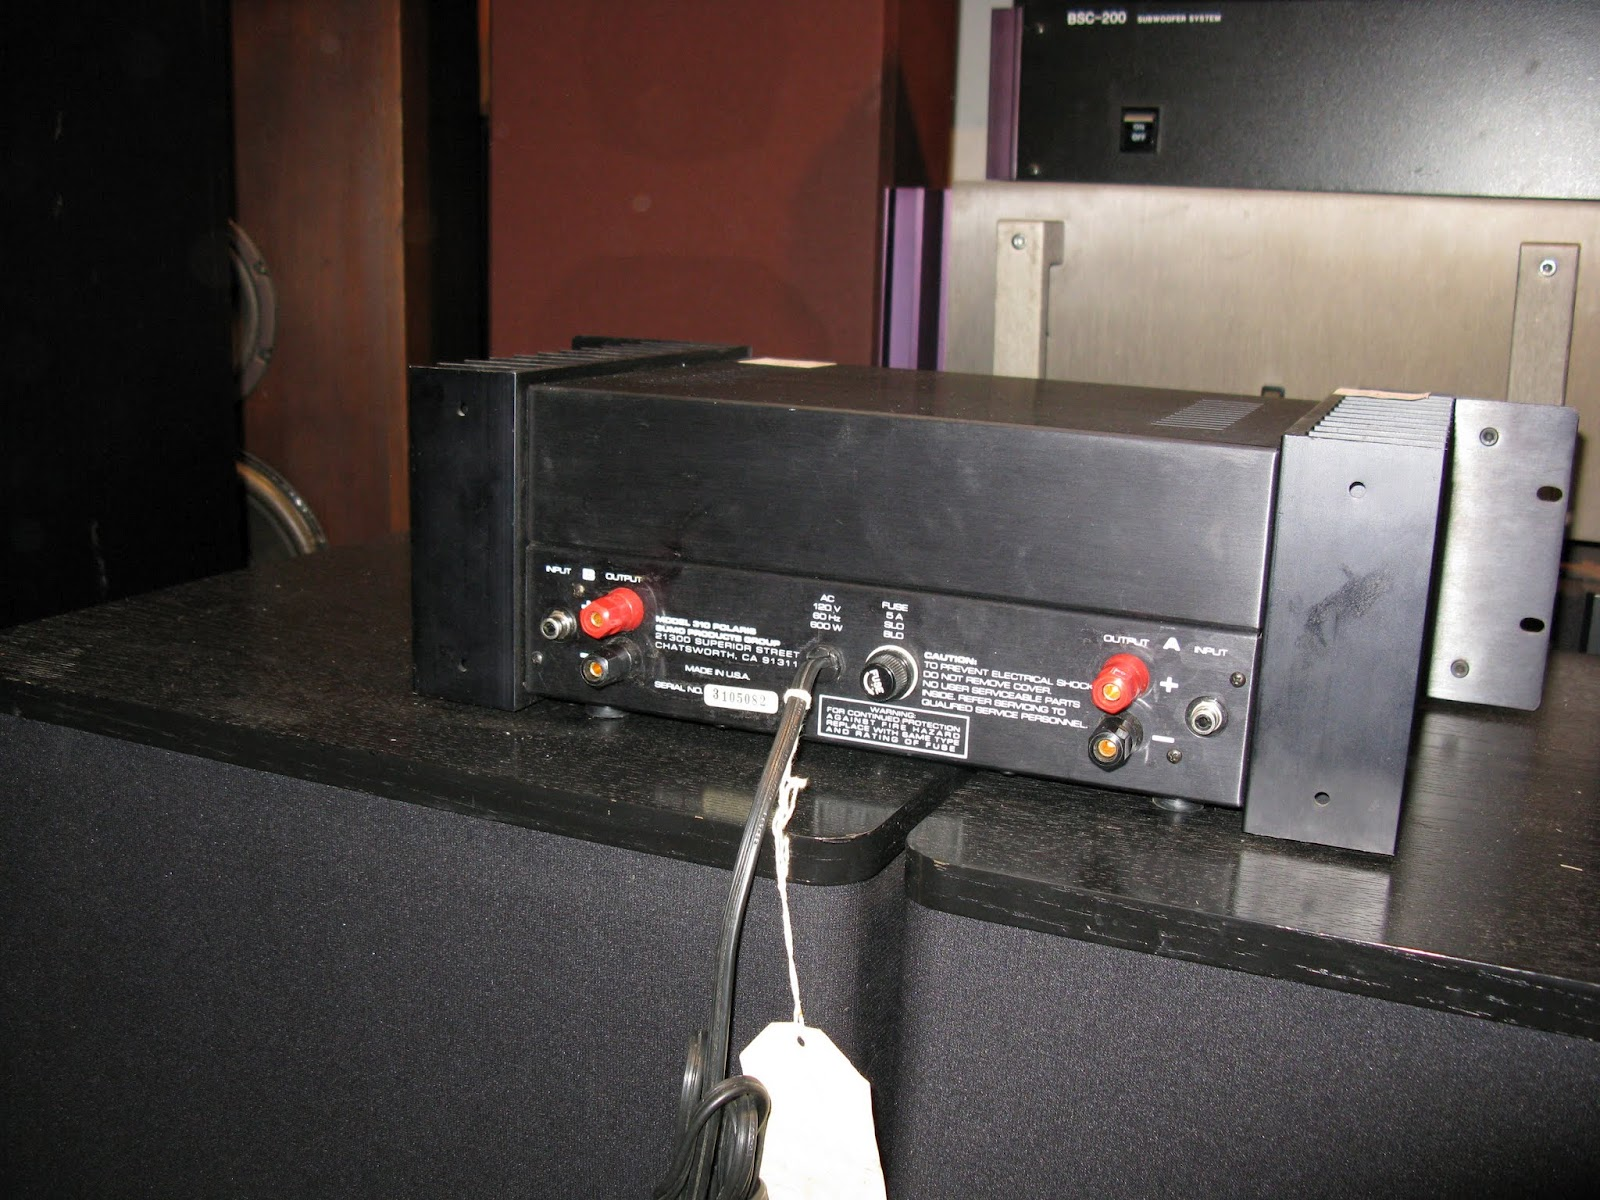 Class A B Ab D Amp H Audio Amplifiers Explained Youtube 1239230 Circuits Gt 5 3w Amplifier With Surround System L36272 Nextgr Recycled Stereo Plus Sumo Polaris Power